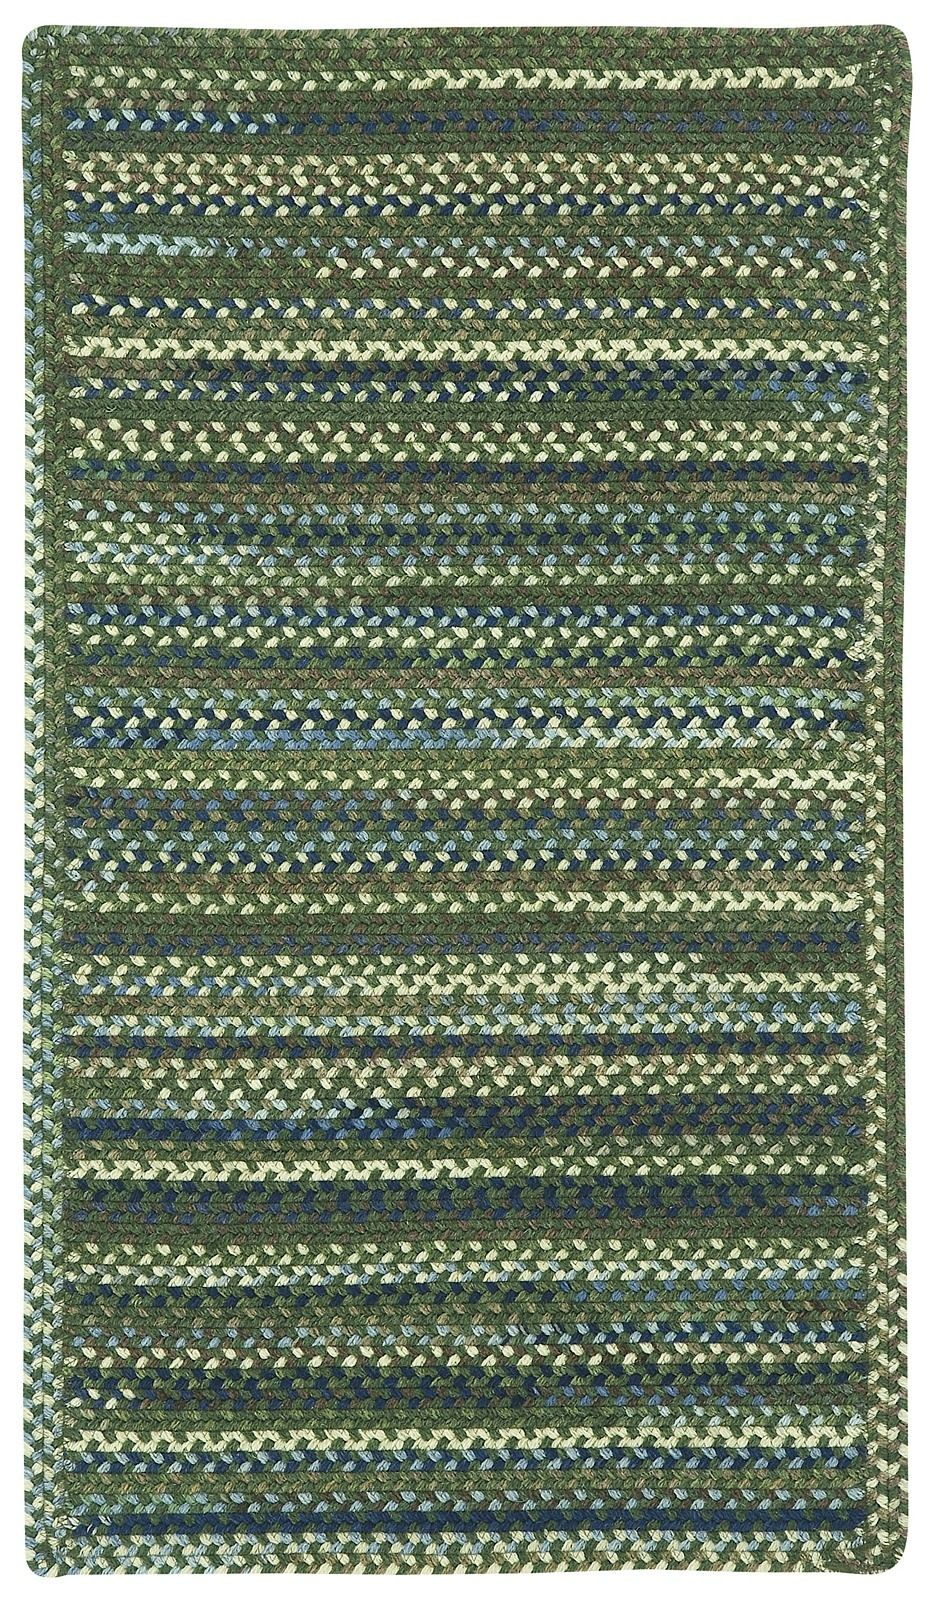 capel manchester braided area rug collection